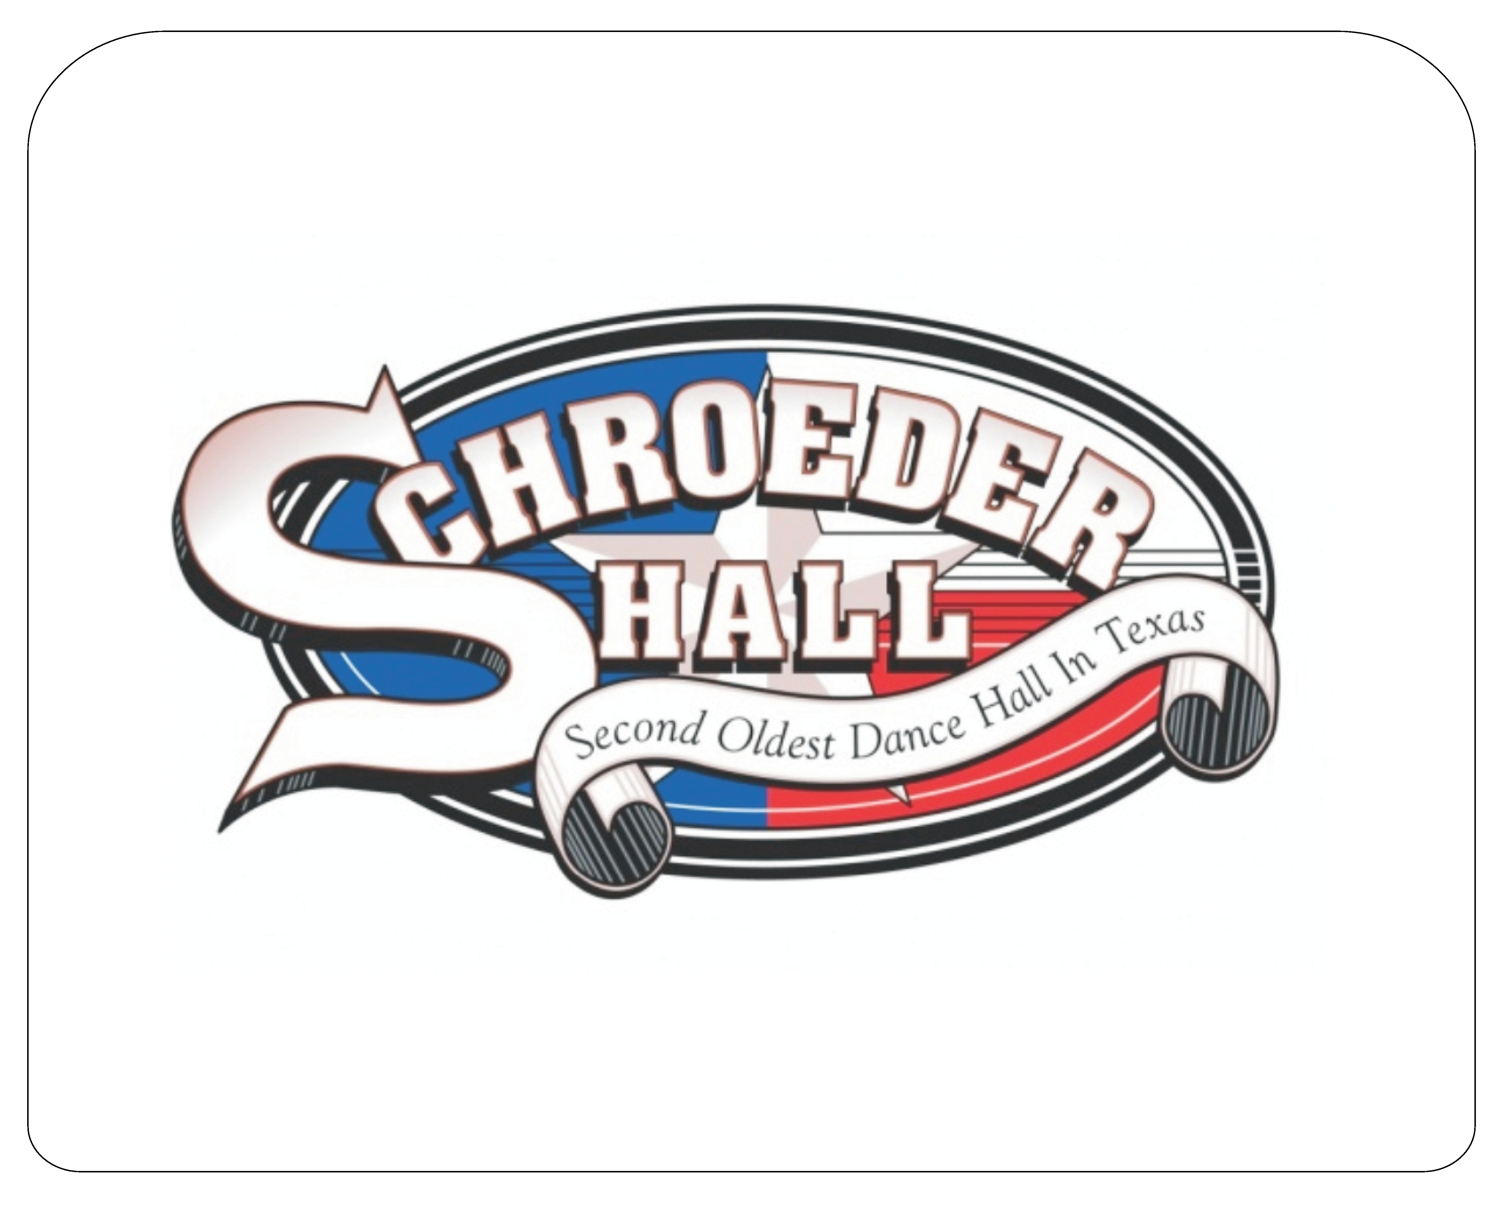 Schroeder 20hall 20  20logo artwork